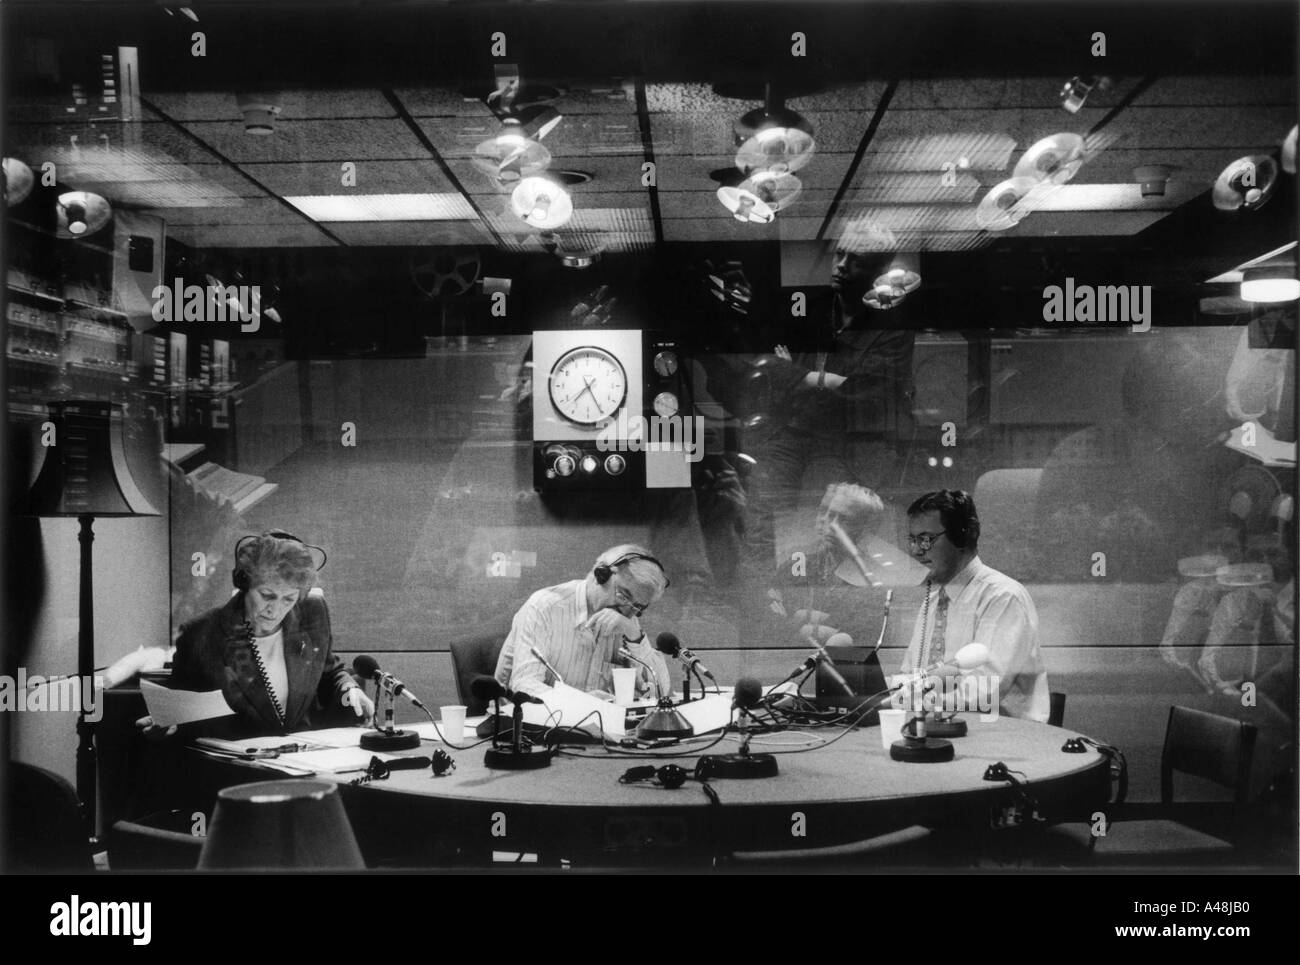 John humphries sue macgregor and sports reporter nick mullin in the bbc radio 4 today programme studio - Stock Image